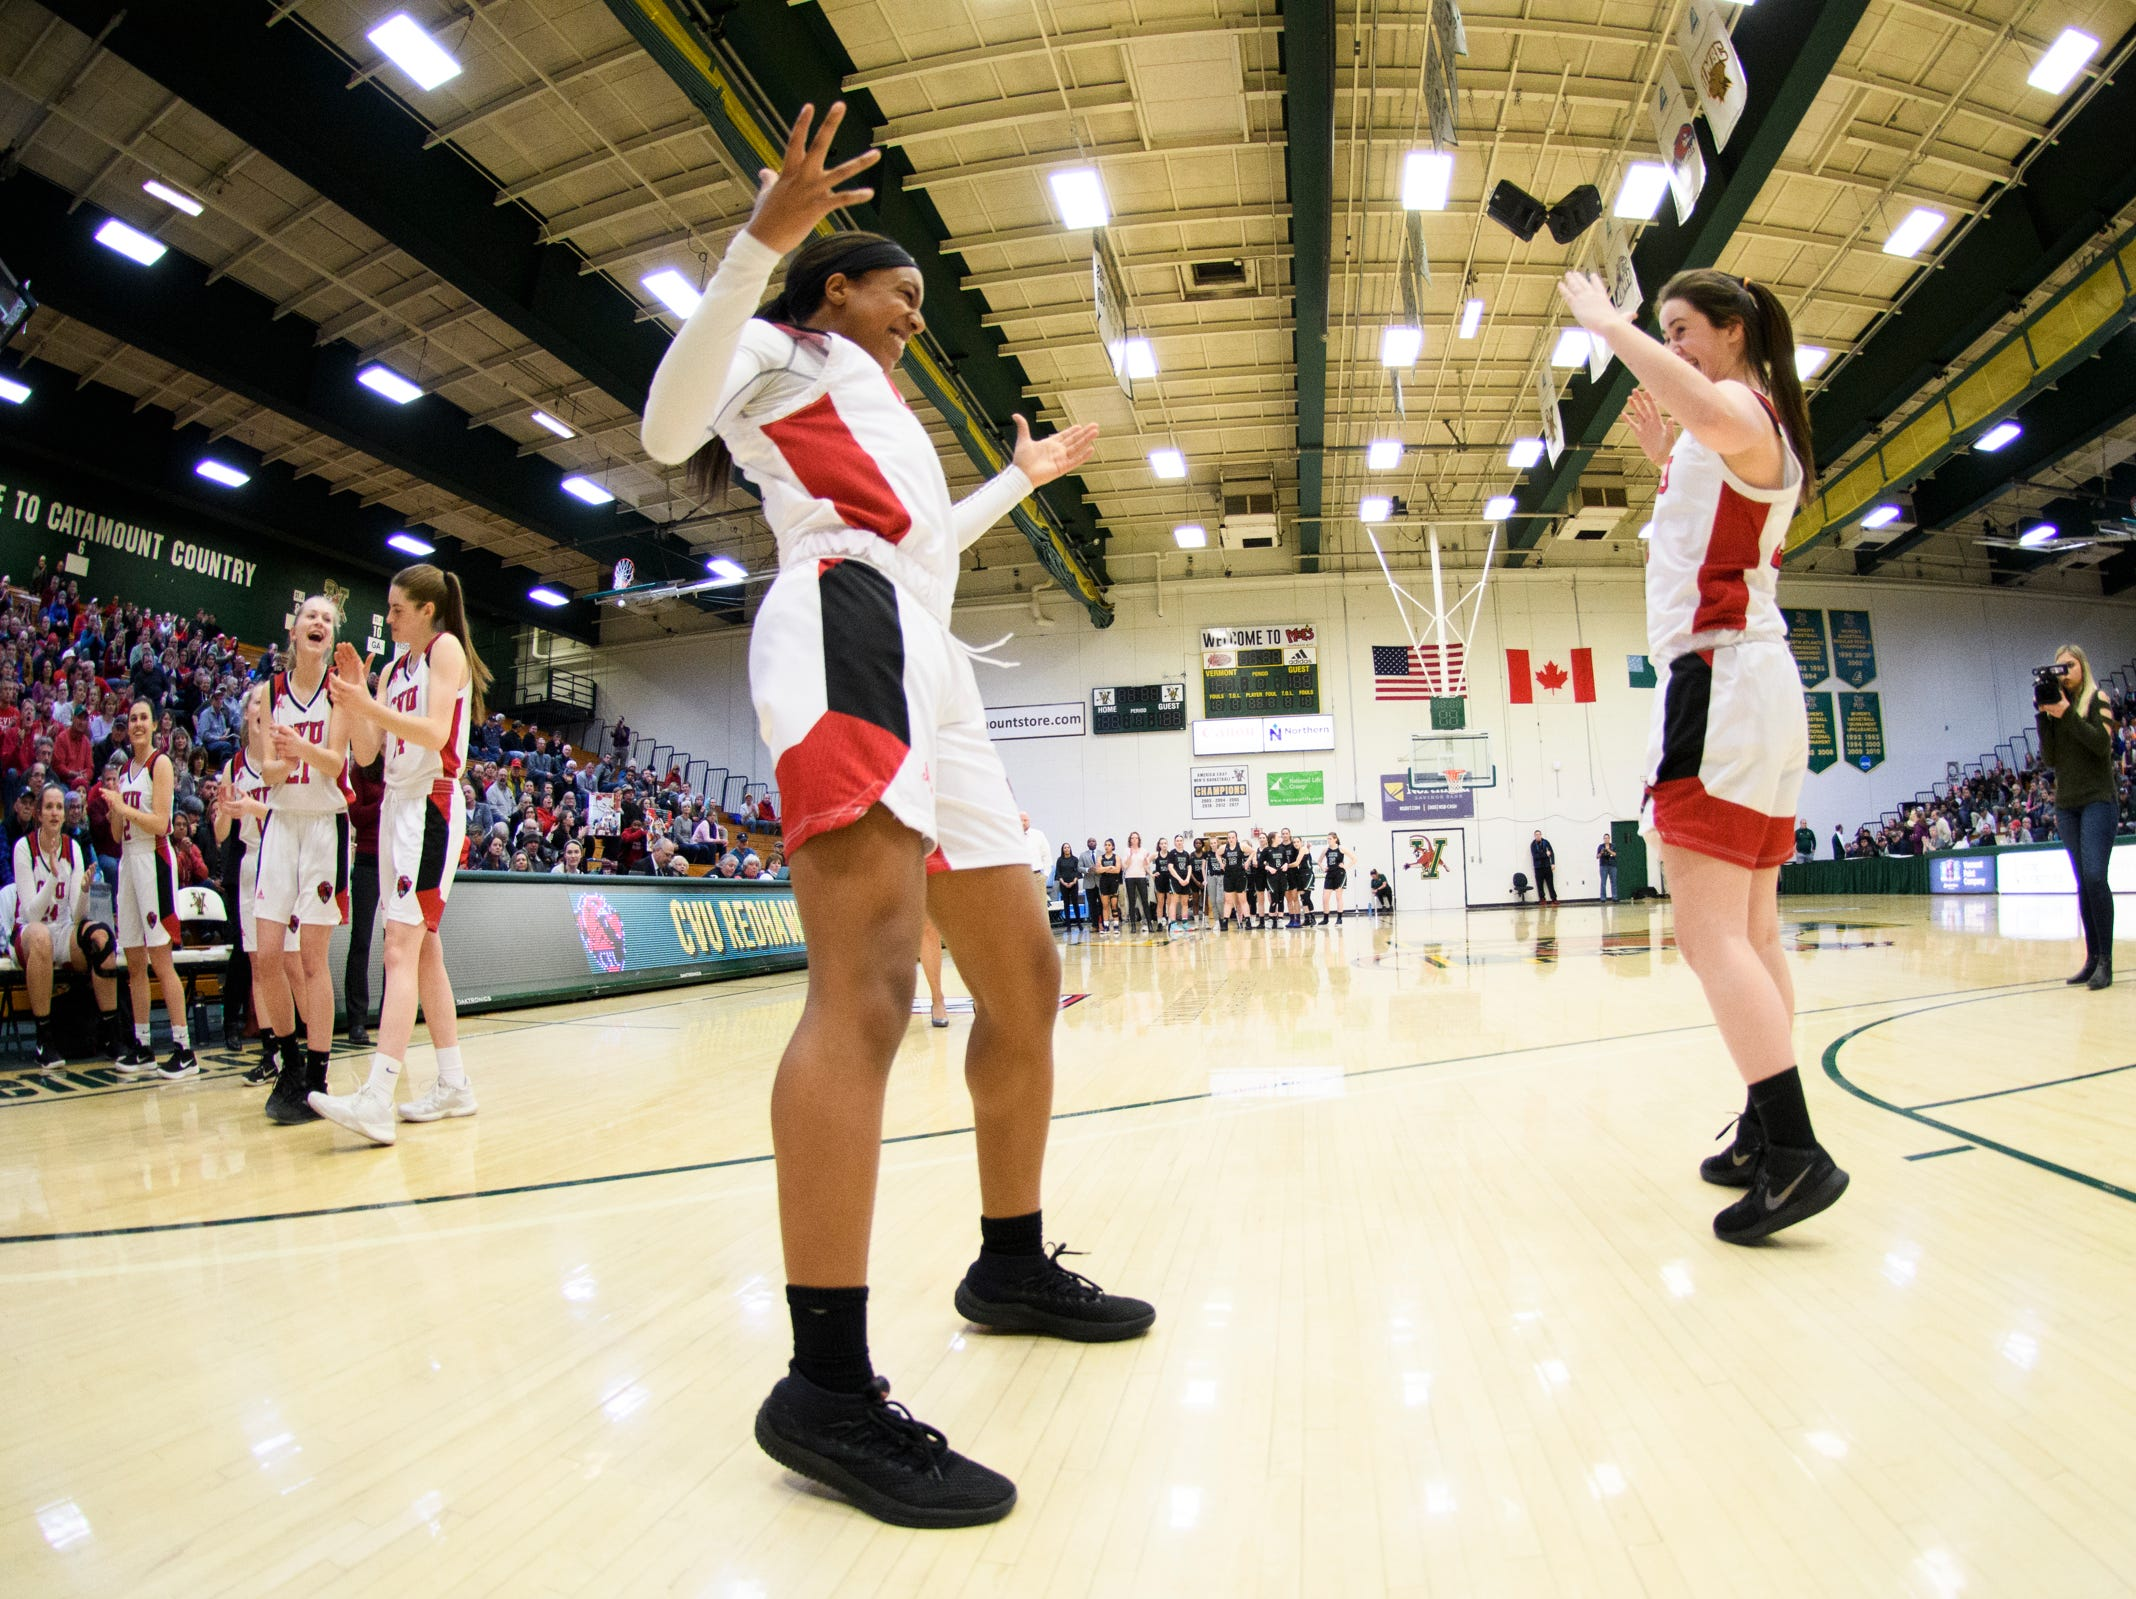 CVU's Mekkena Boyd (3) takes the court for player introductions during the girls semifinal basketball game between the Rice Green Knights and the Champlain Valley Union Redhawks at Patrick Gym on Wednesday nigh March 6, 2019 in Burlington, Vermont.